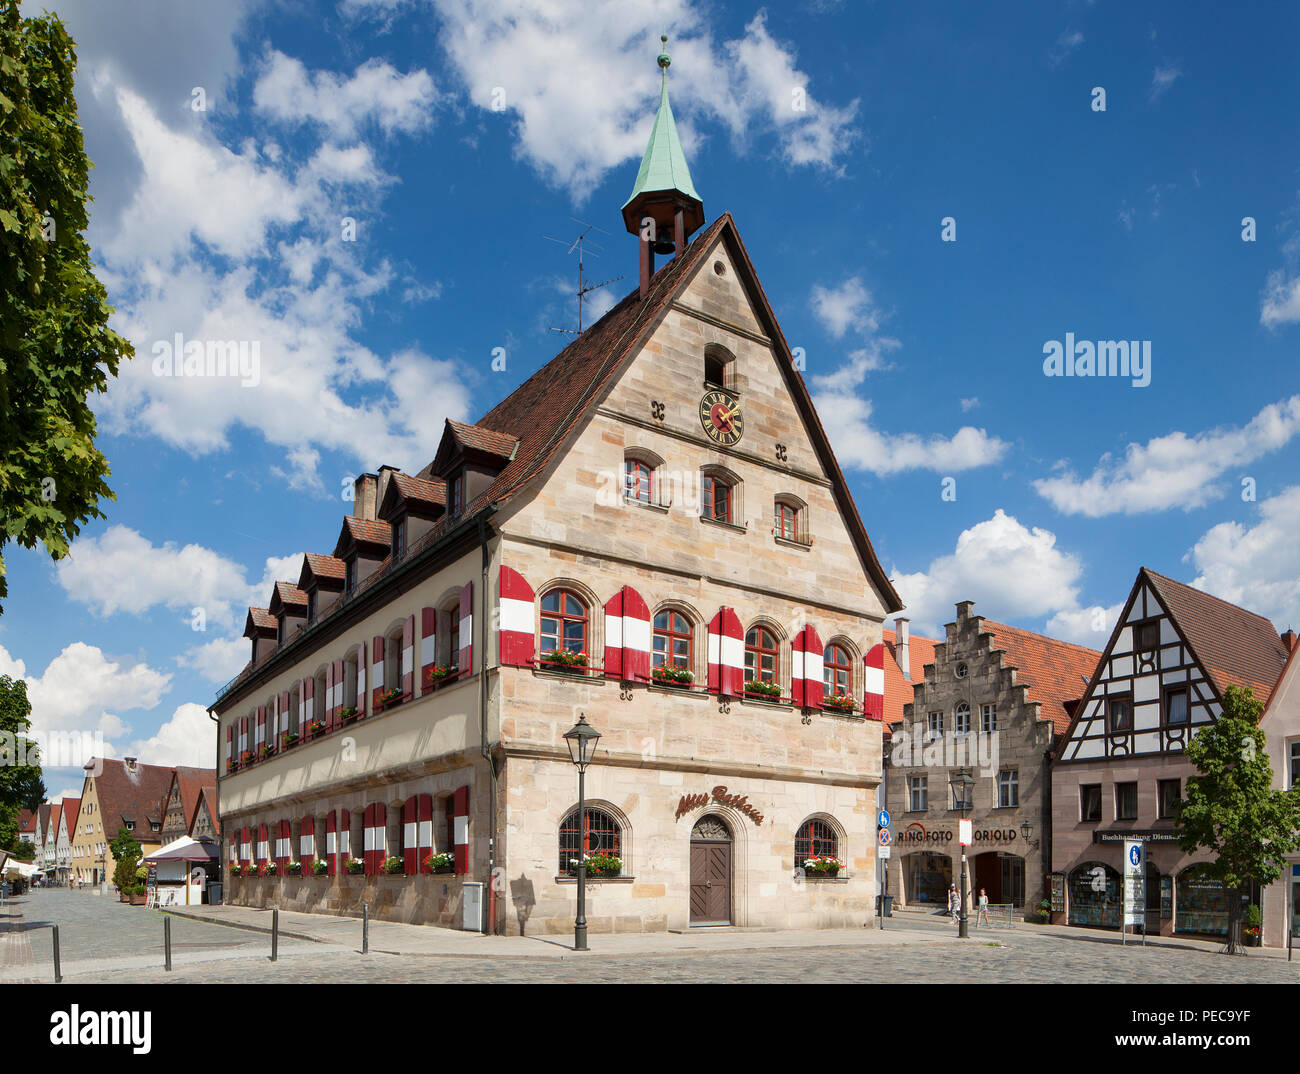 Old Town Hall on market square, Lauf an der Pegnitz, Middle Franconia, Franconia, Bavaria, Germany - Stock Image